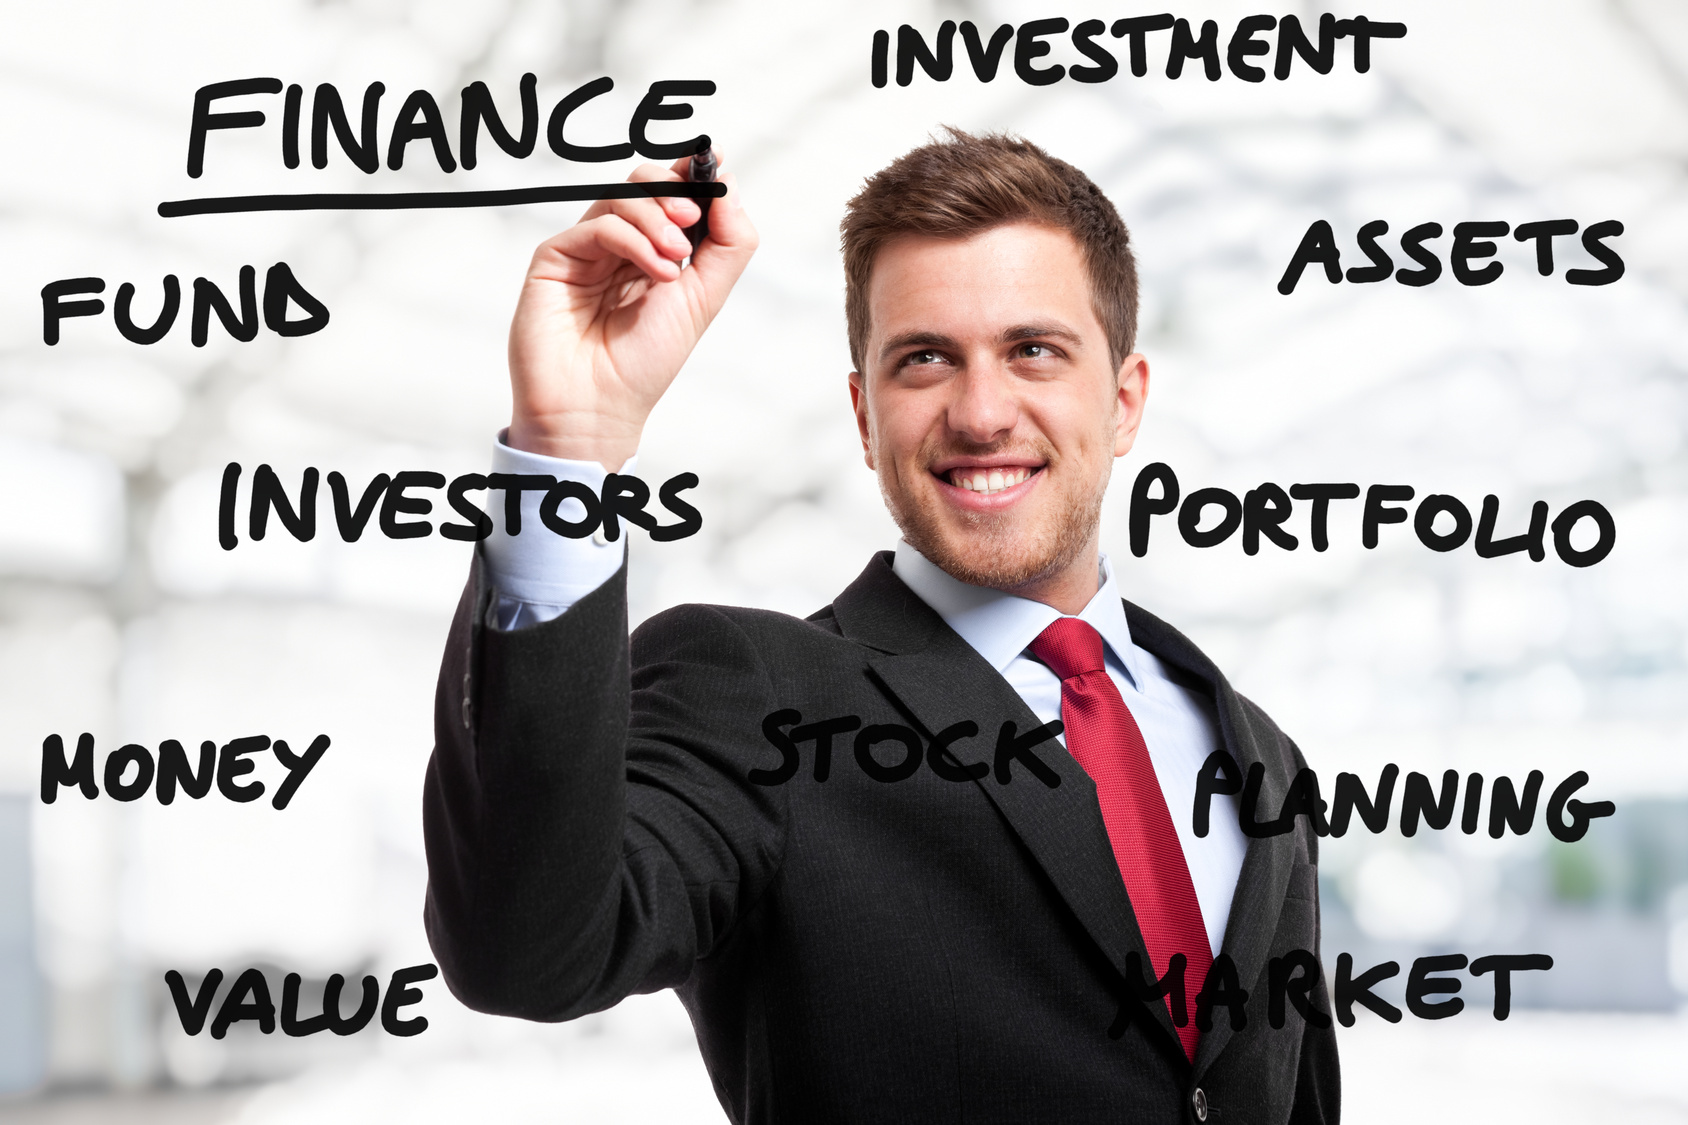 Financial Planning | Strategies for Financial Planning | Investment Risk | Wiseradvisor.com